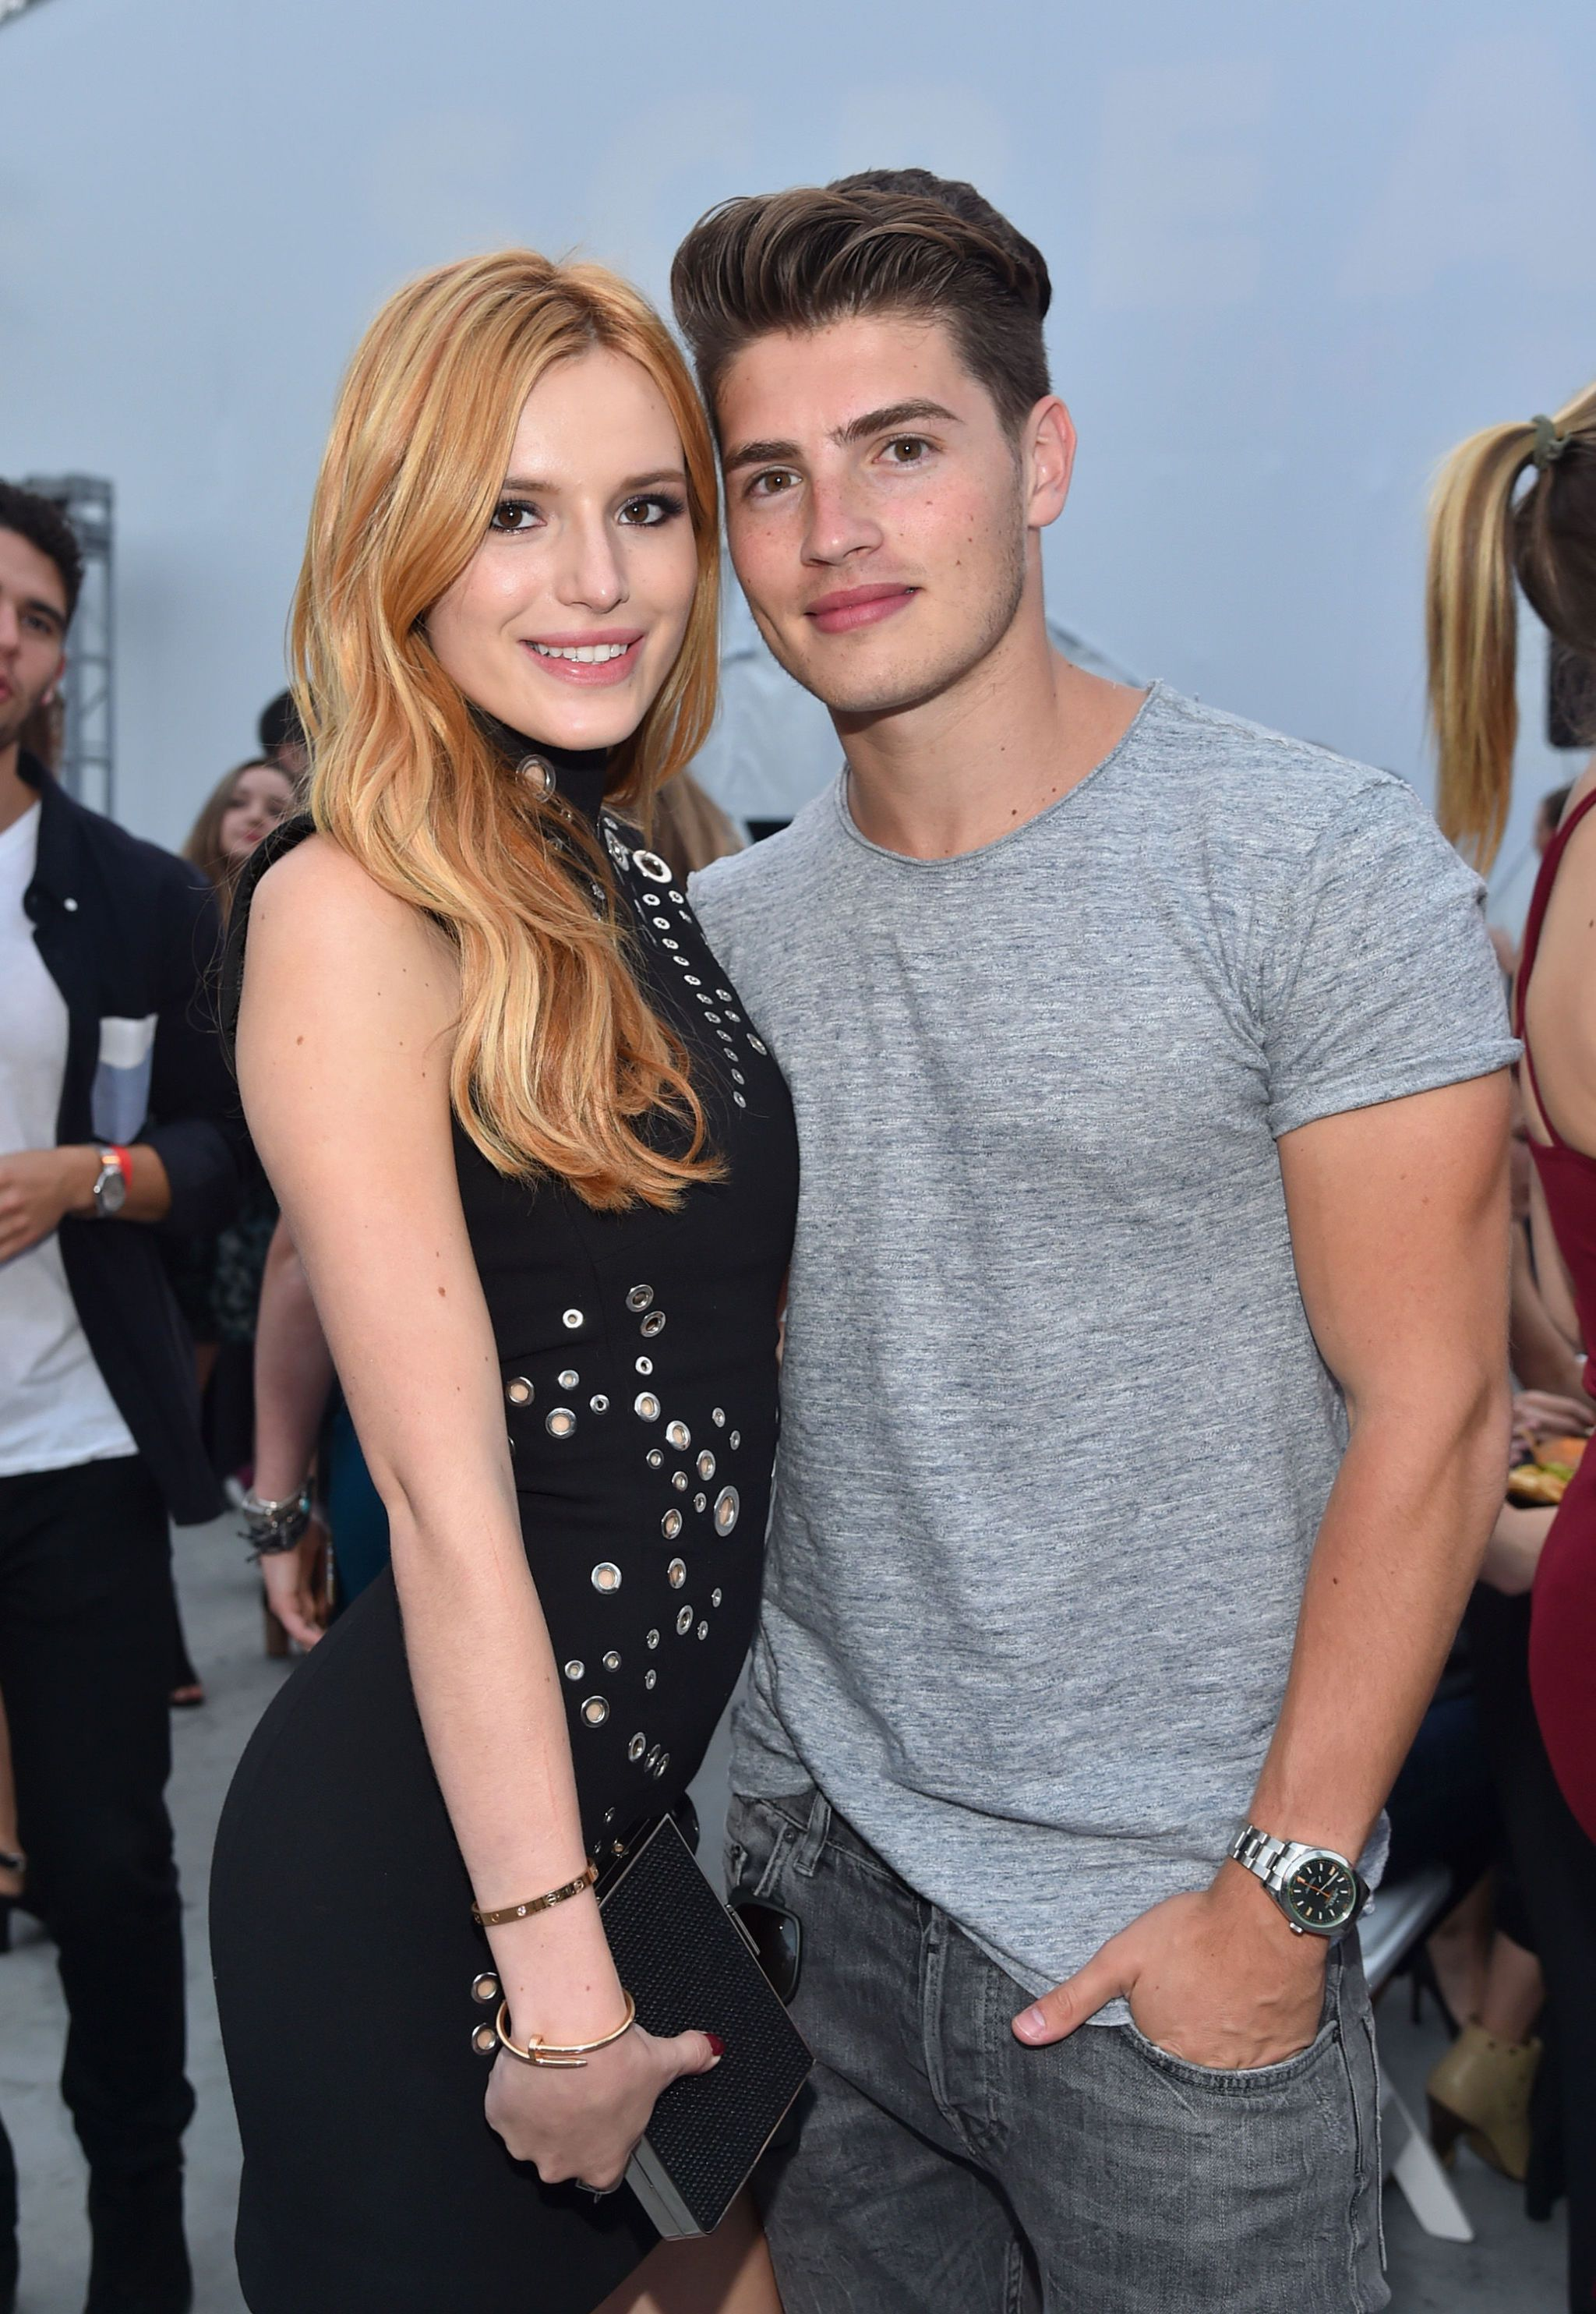 Who is bella thorne currently dating